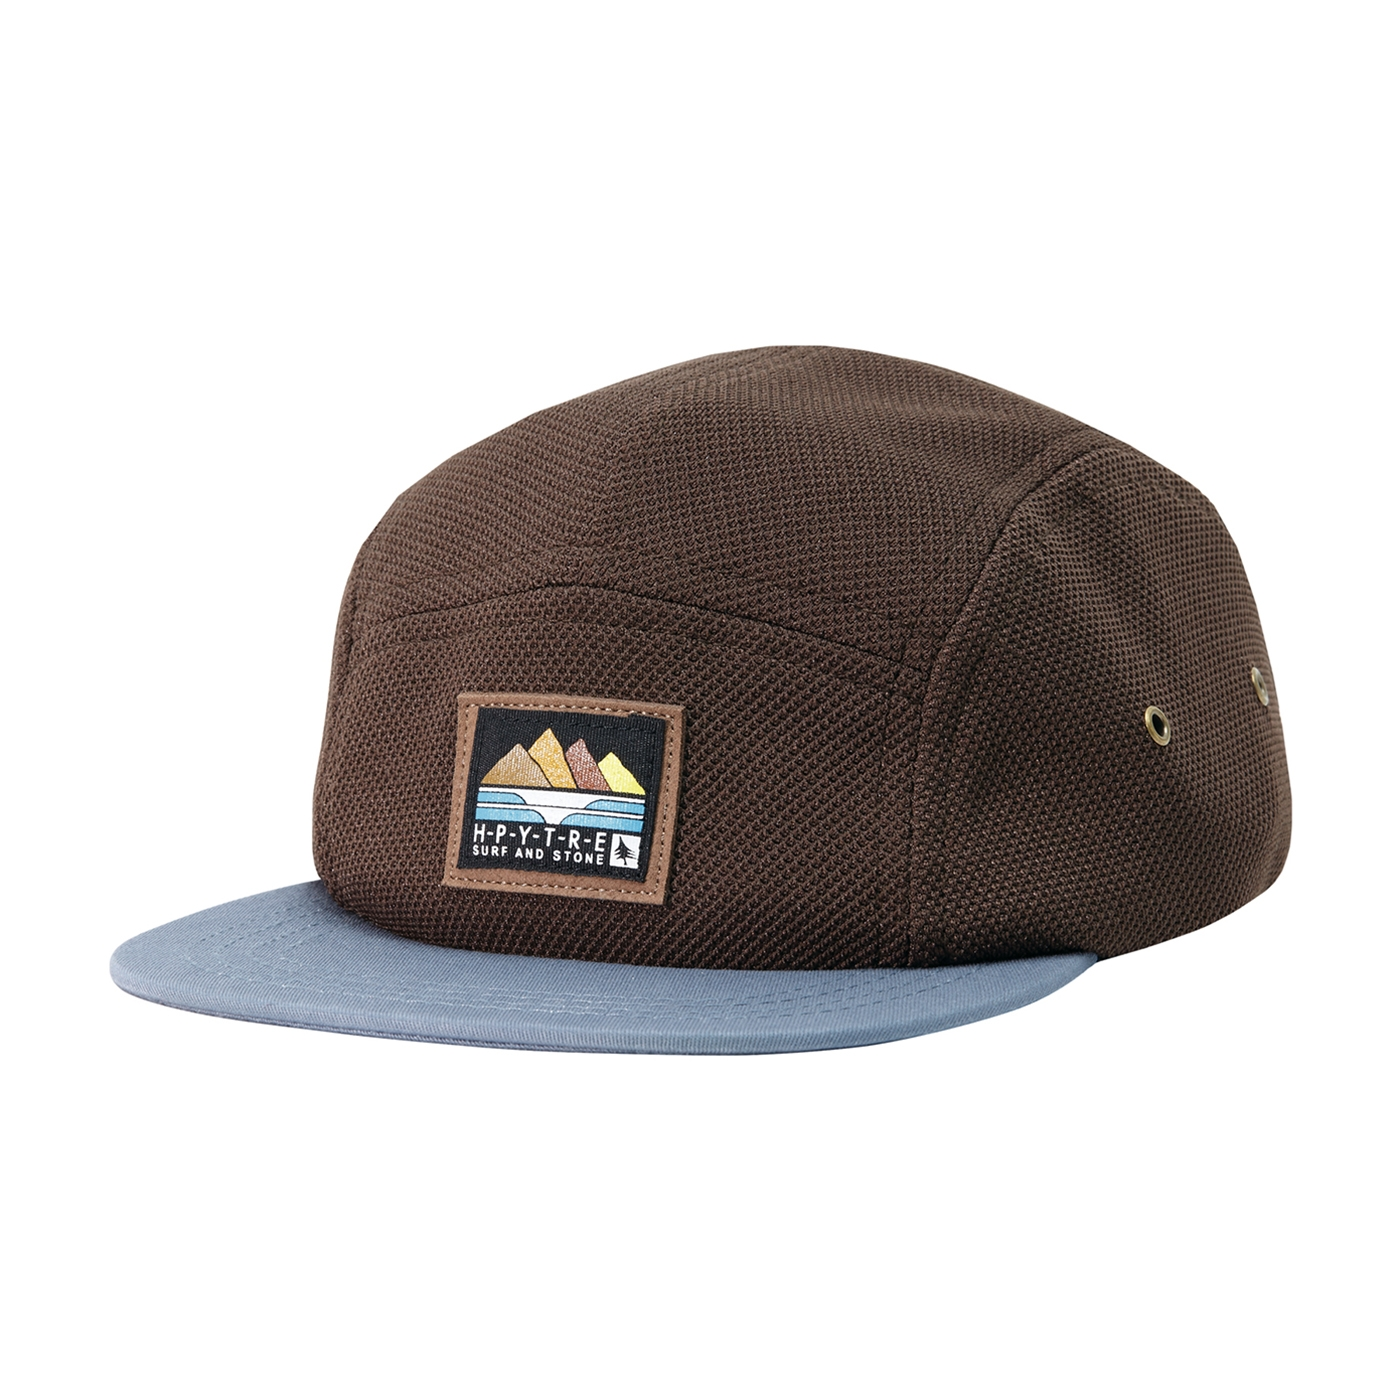 002552db65d Barstow Hat Brown   HippyTree